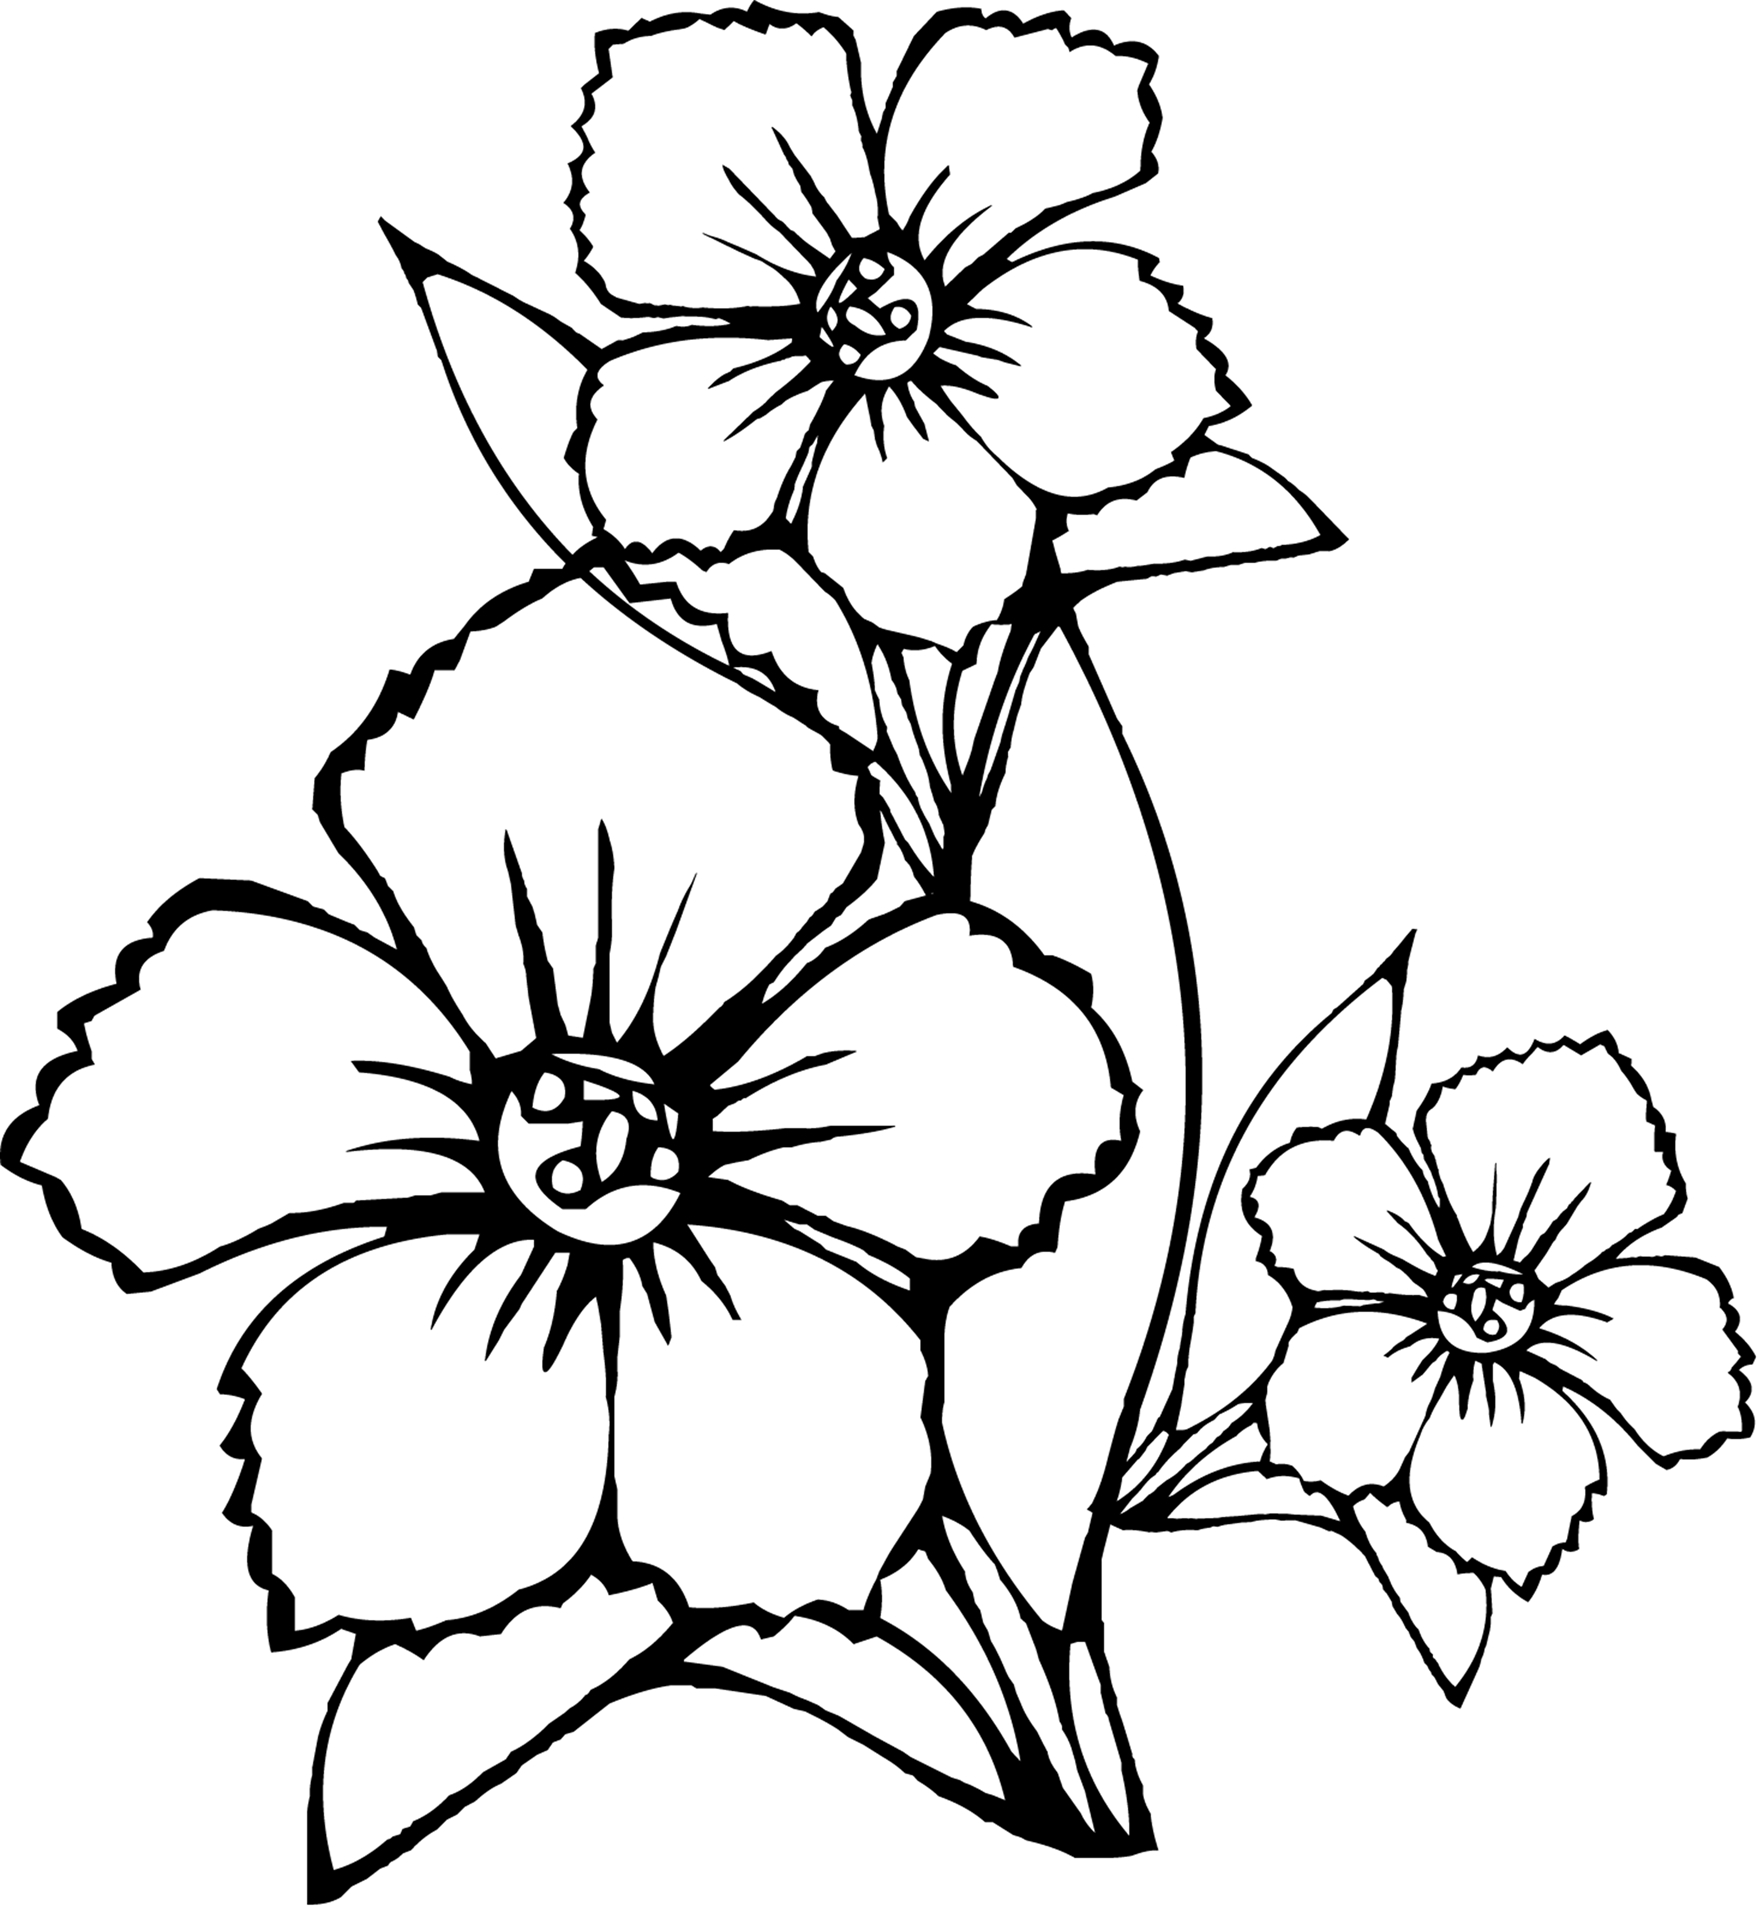 a flower coloring page free printable flower coloring pages for kids best coloring page a flower